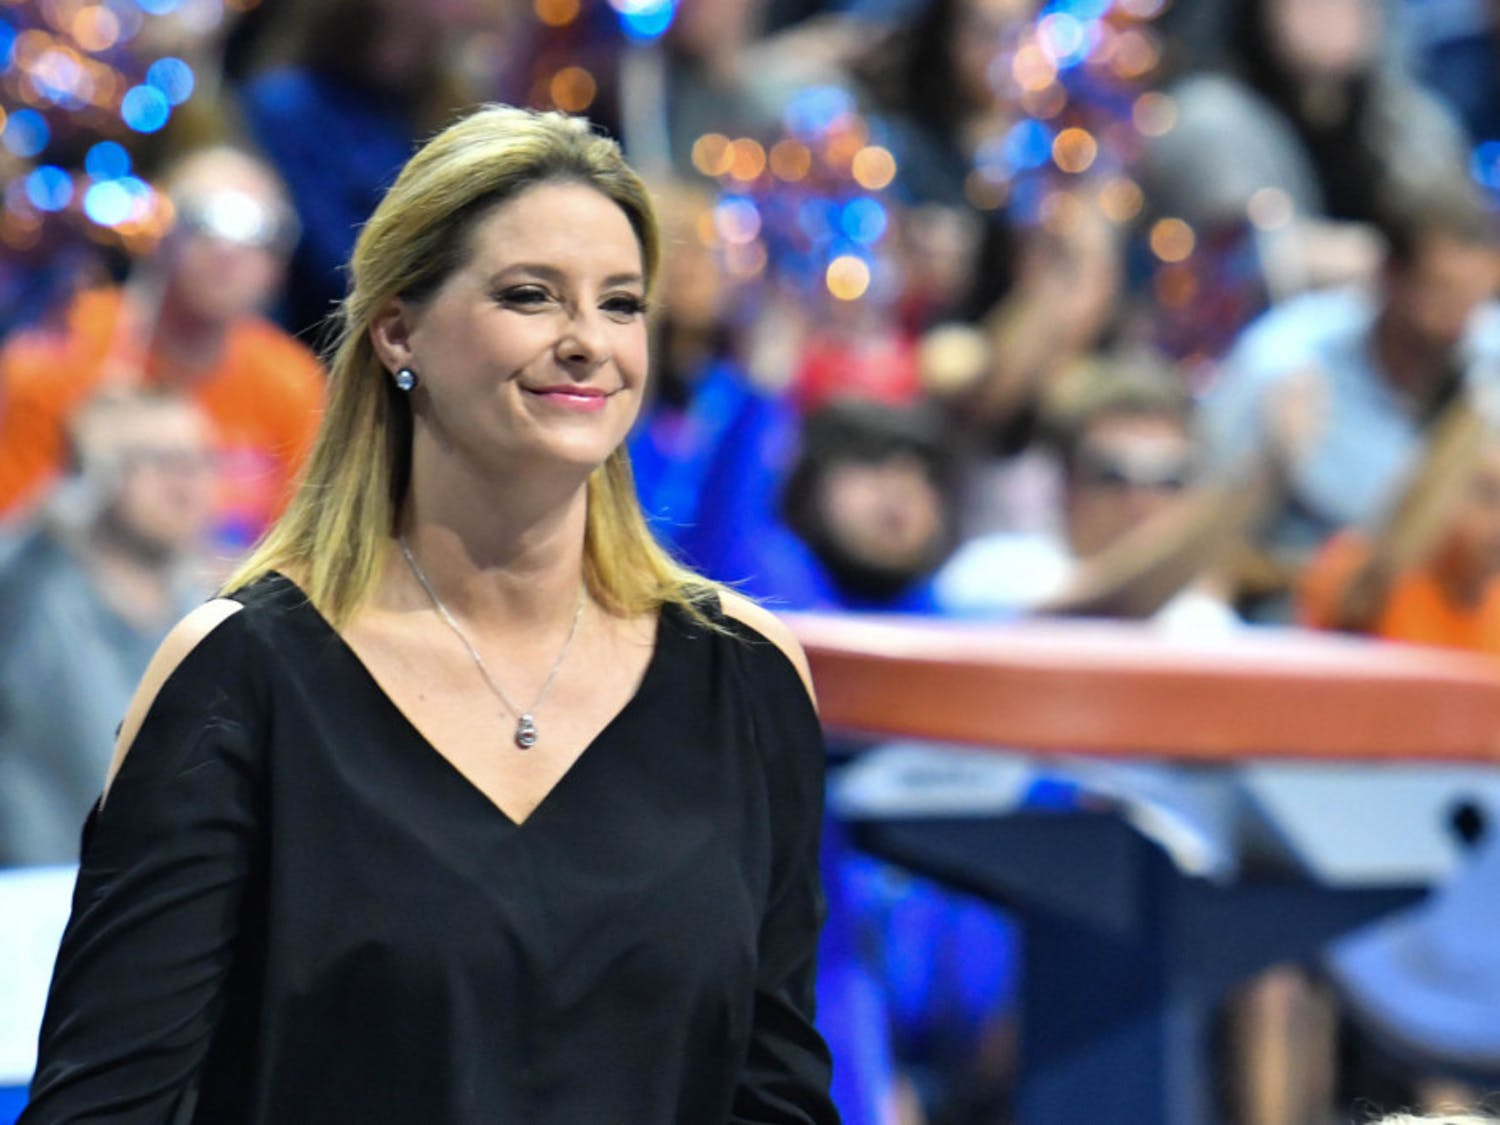 """The No. 6 Gators never trailed in their meet against Kentucky Friday night. But their night was not without its flaws.""""It wasn't a perfect night,"""" coach Jenny Rowland said. """"We made a lot of improvements in different areas from our first road meet, which is always good to see."""""""